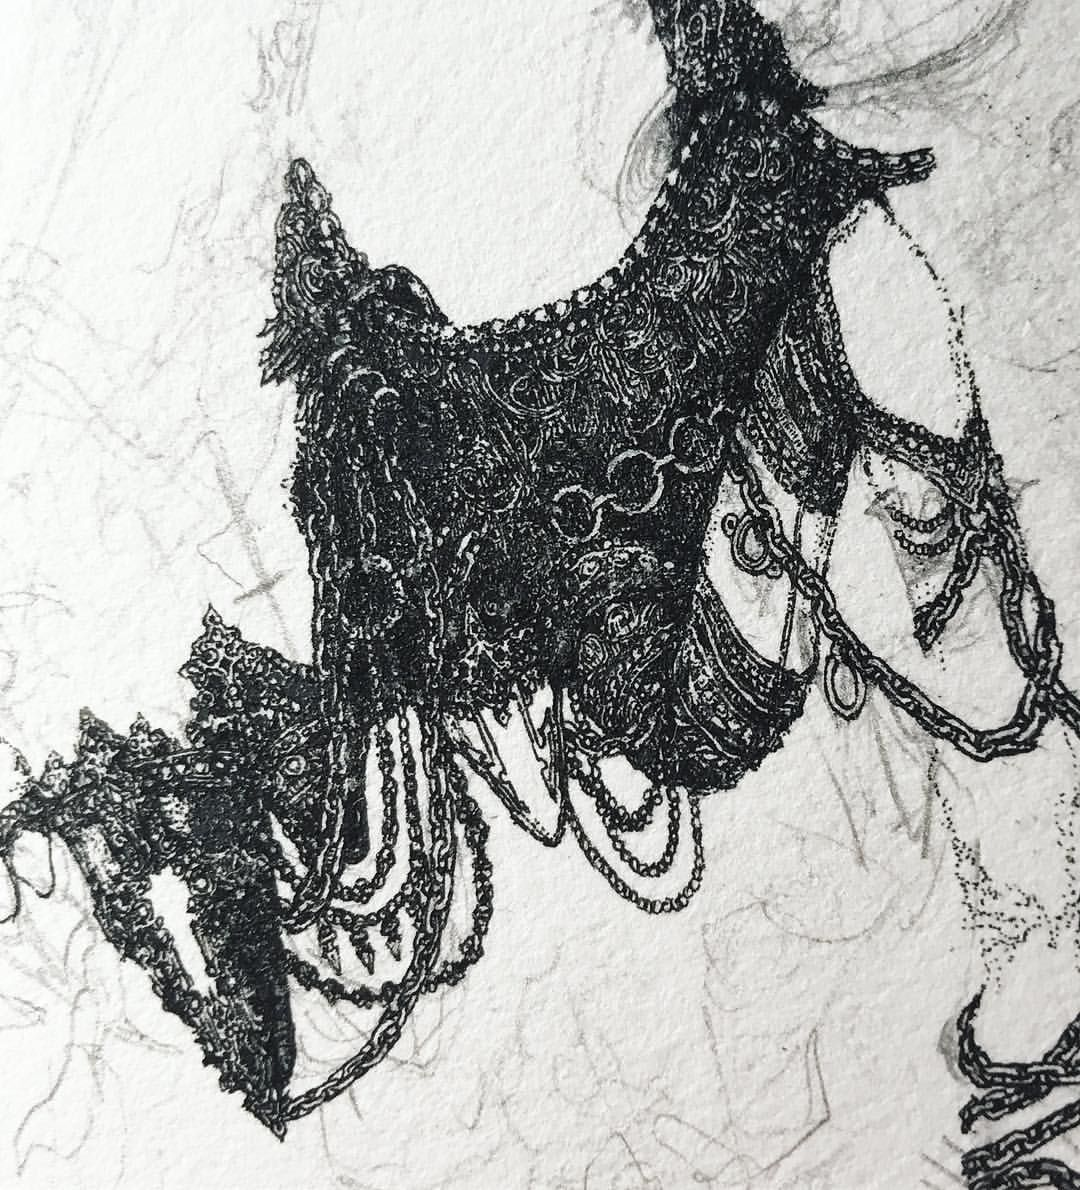 Kali Alida On Instagram Gilded Arachnid Incendiary Seething Crystalline Corrosive Lesions 2 5 Inches The Moose Art Freedom From The Known Humanoid Sketch